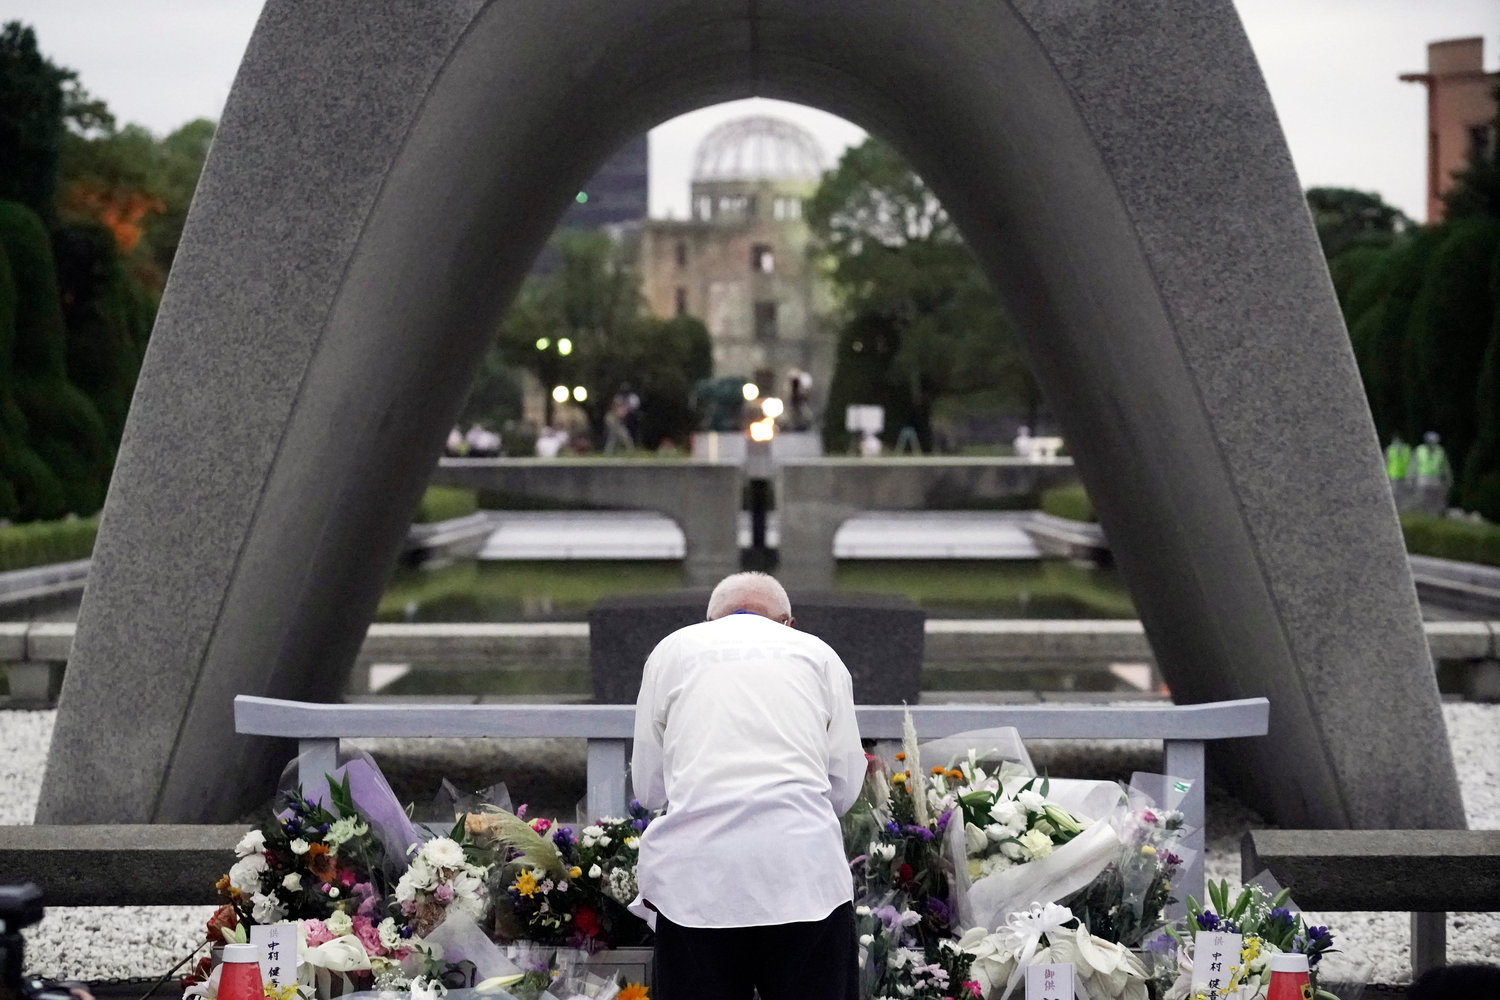 A man prays in front of the cenotaph for the atomic bombing victims before the start of ceremony to mark the 75th anniversary of the bombing in Hiroshima, western Japan early Thursday, Aug. 6, 2020. (AP Photo/Eugene Hoshiko)